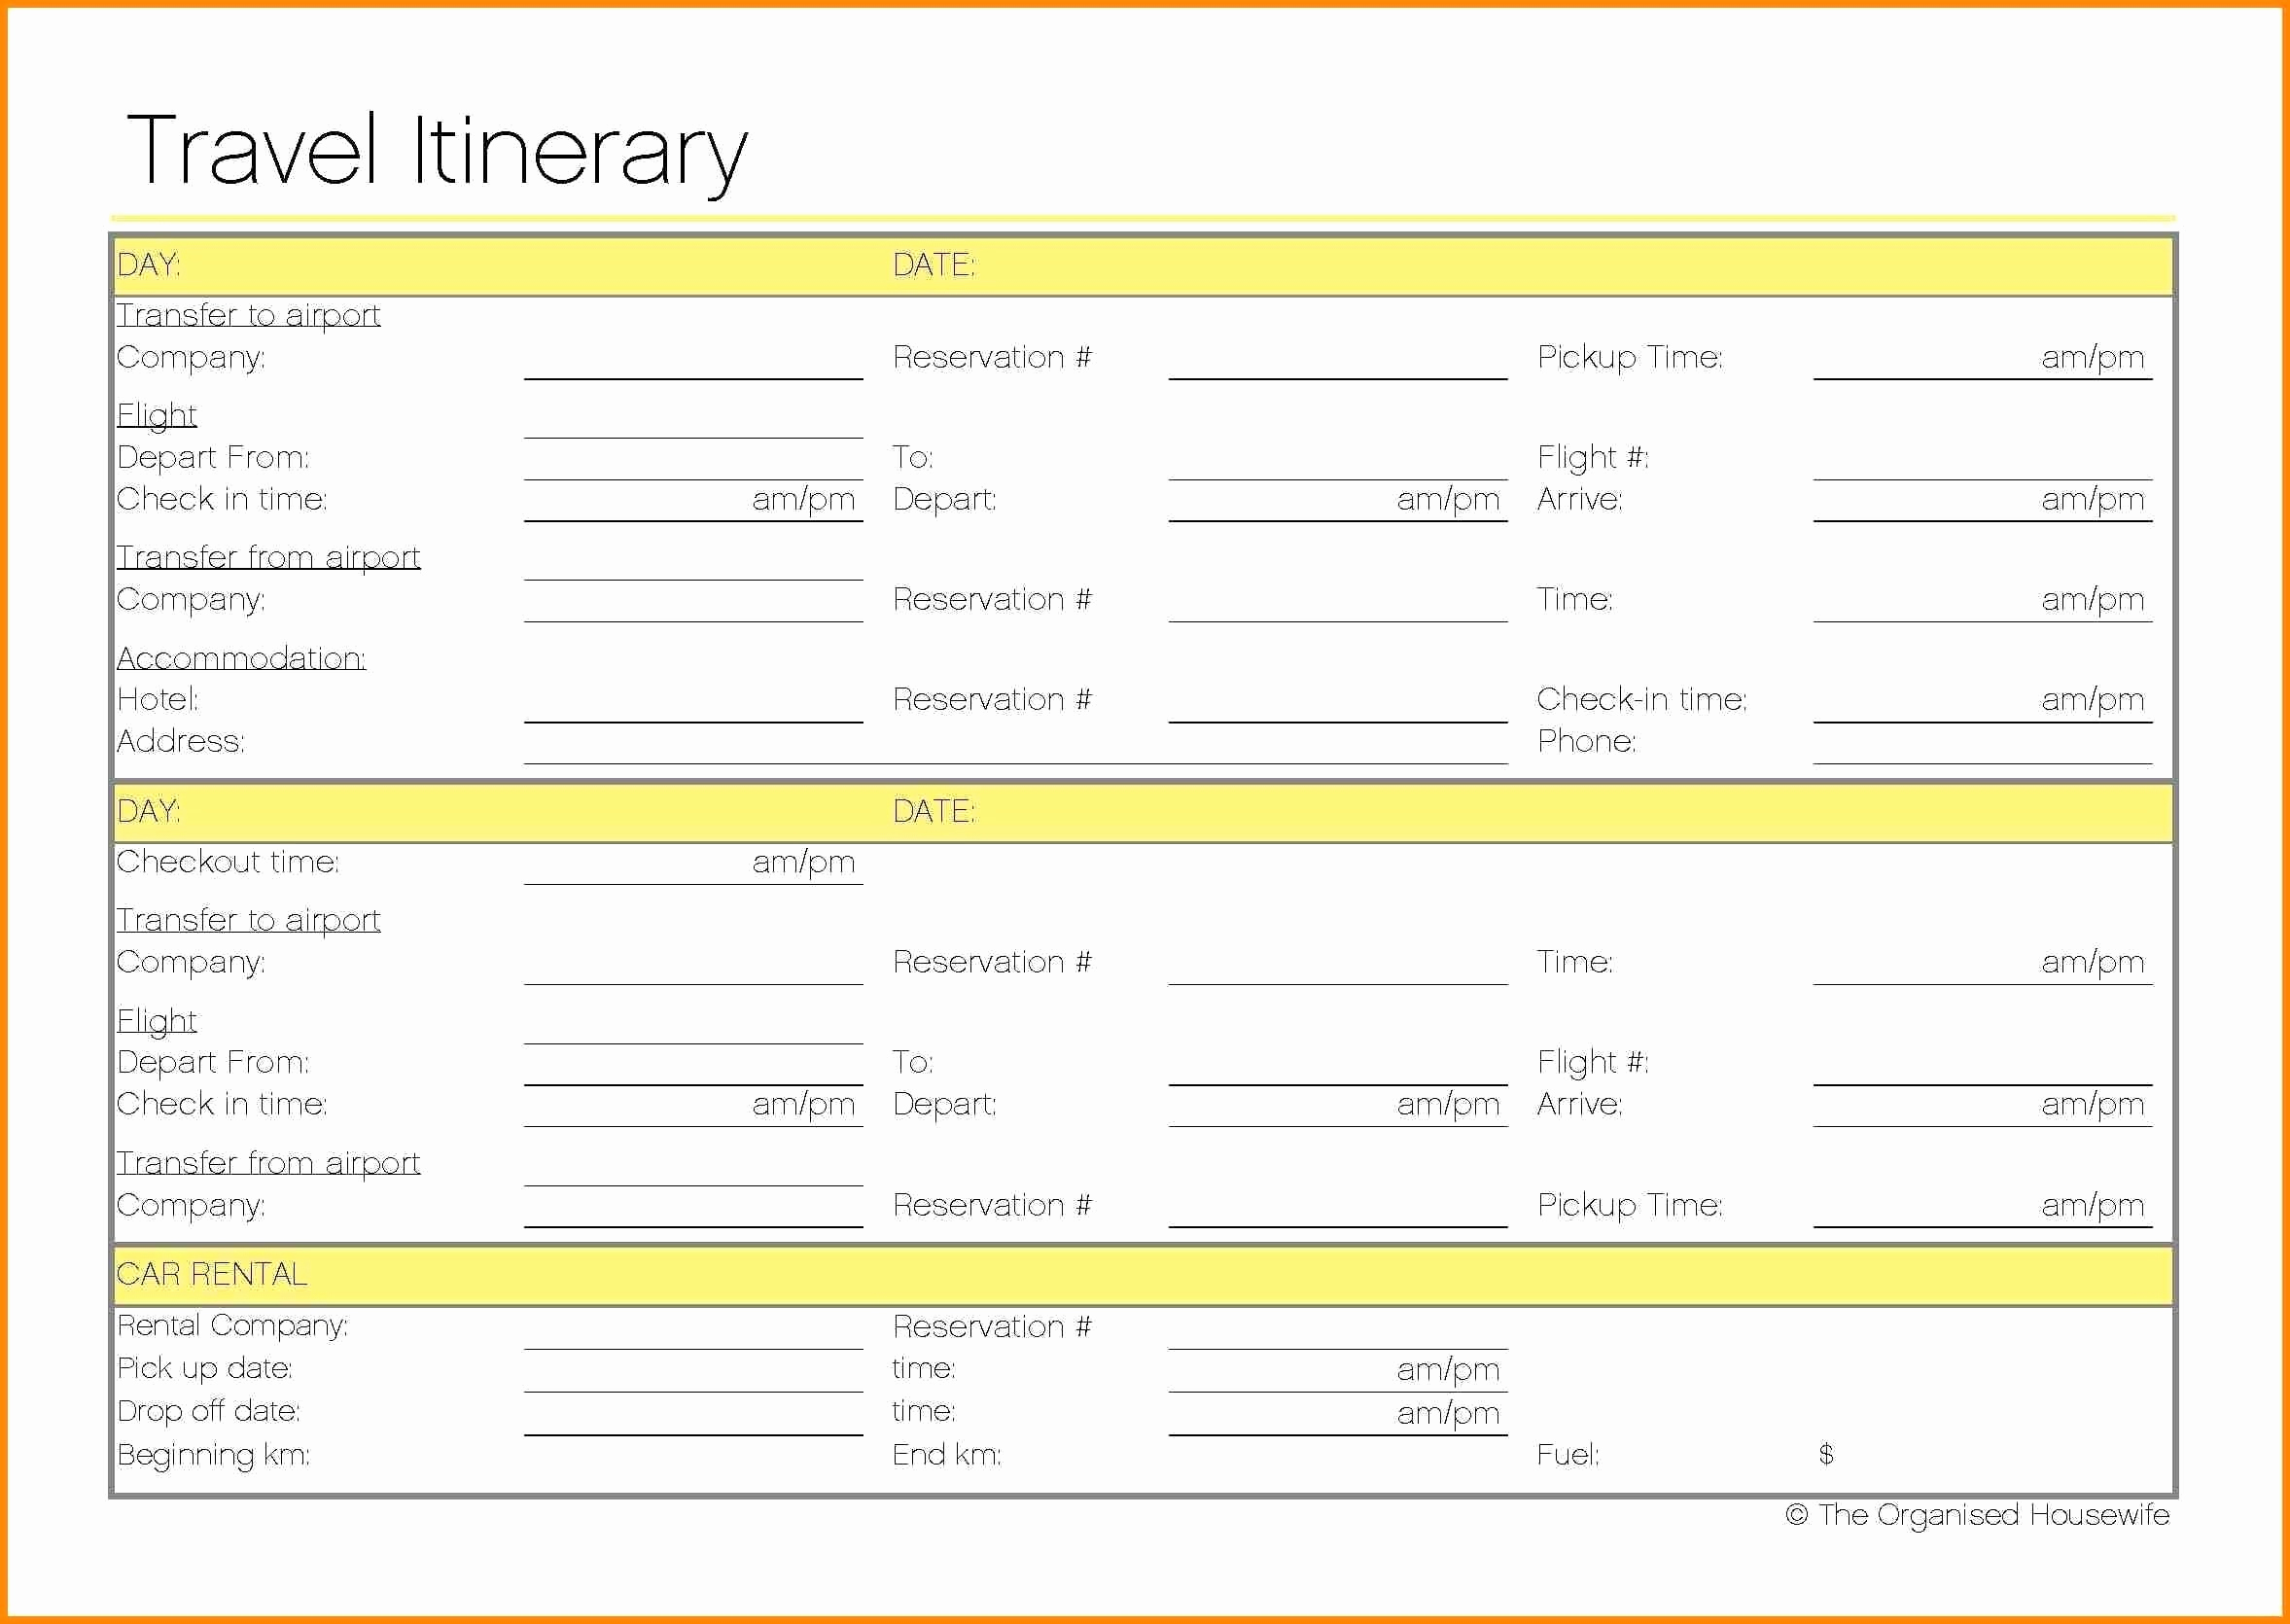 Itinerary Template Google Docs Beautiful Travel Itinerary Template Google Docs